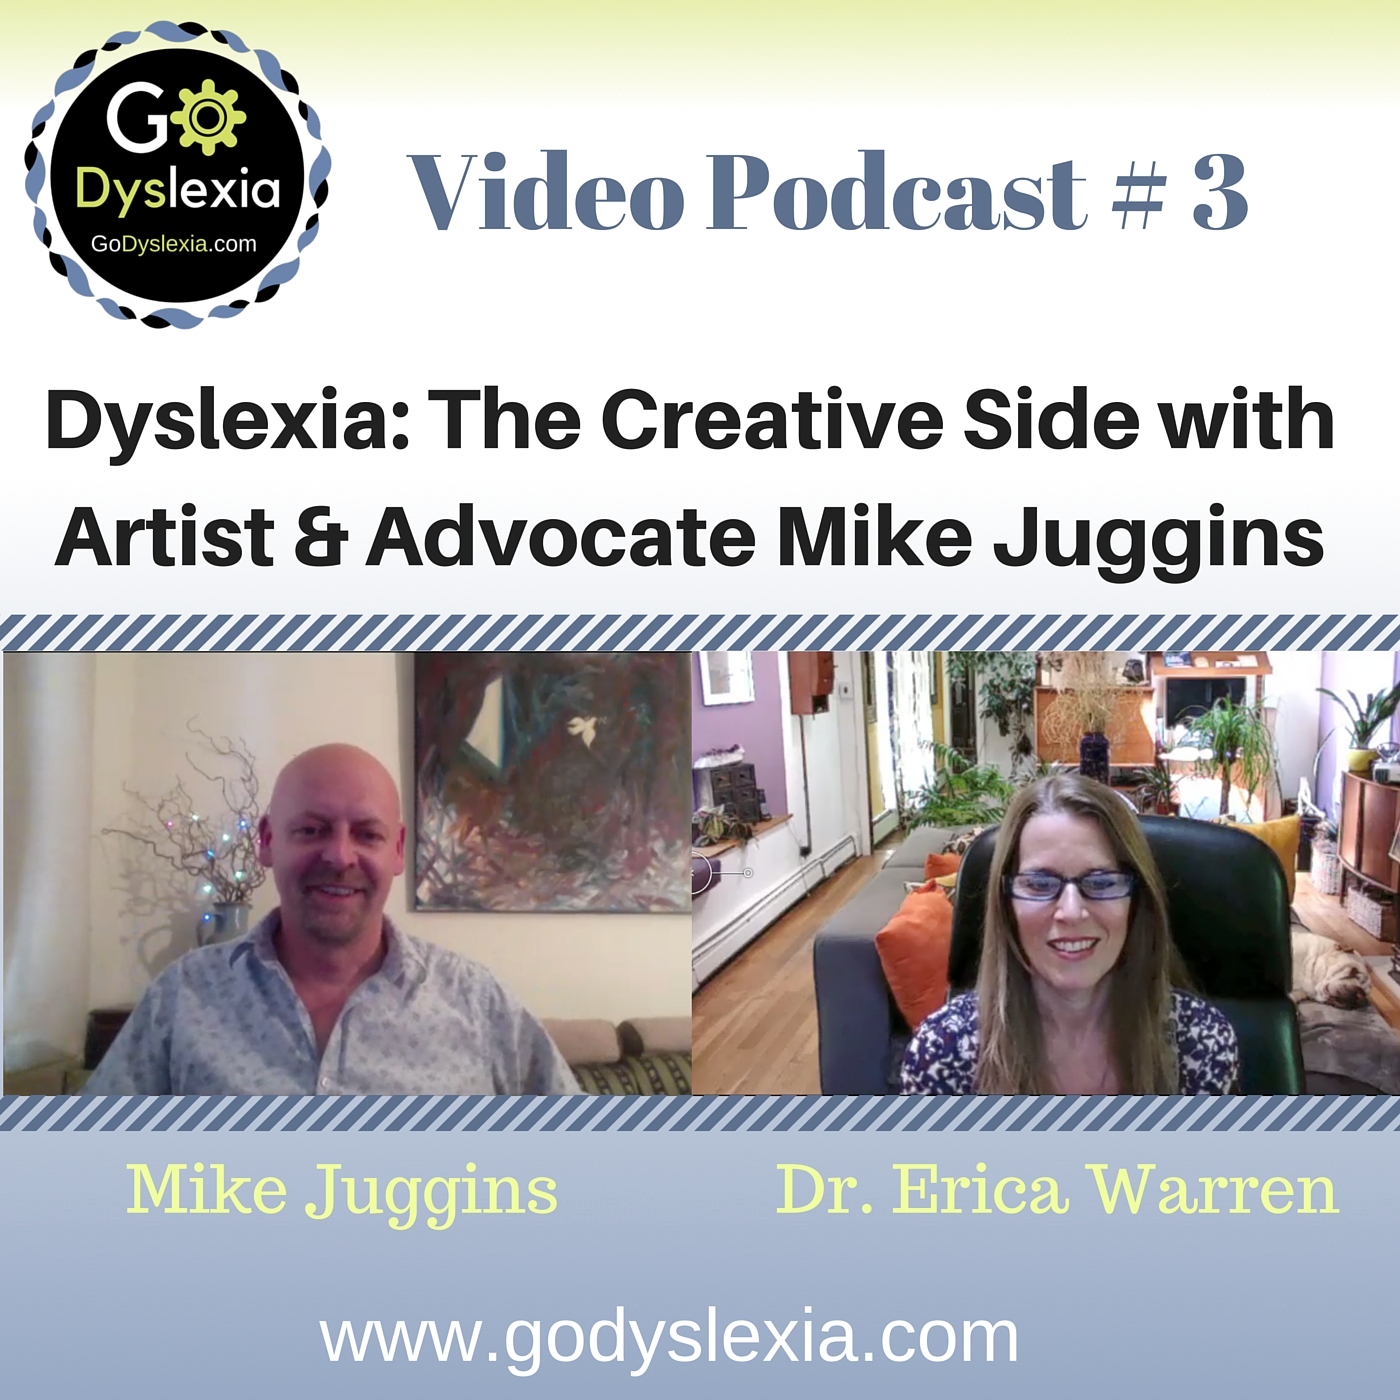 Go Dyslexia Episode 3: The Creative Side with Artist and Advocate Mike Juggins